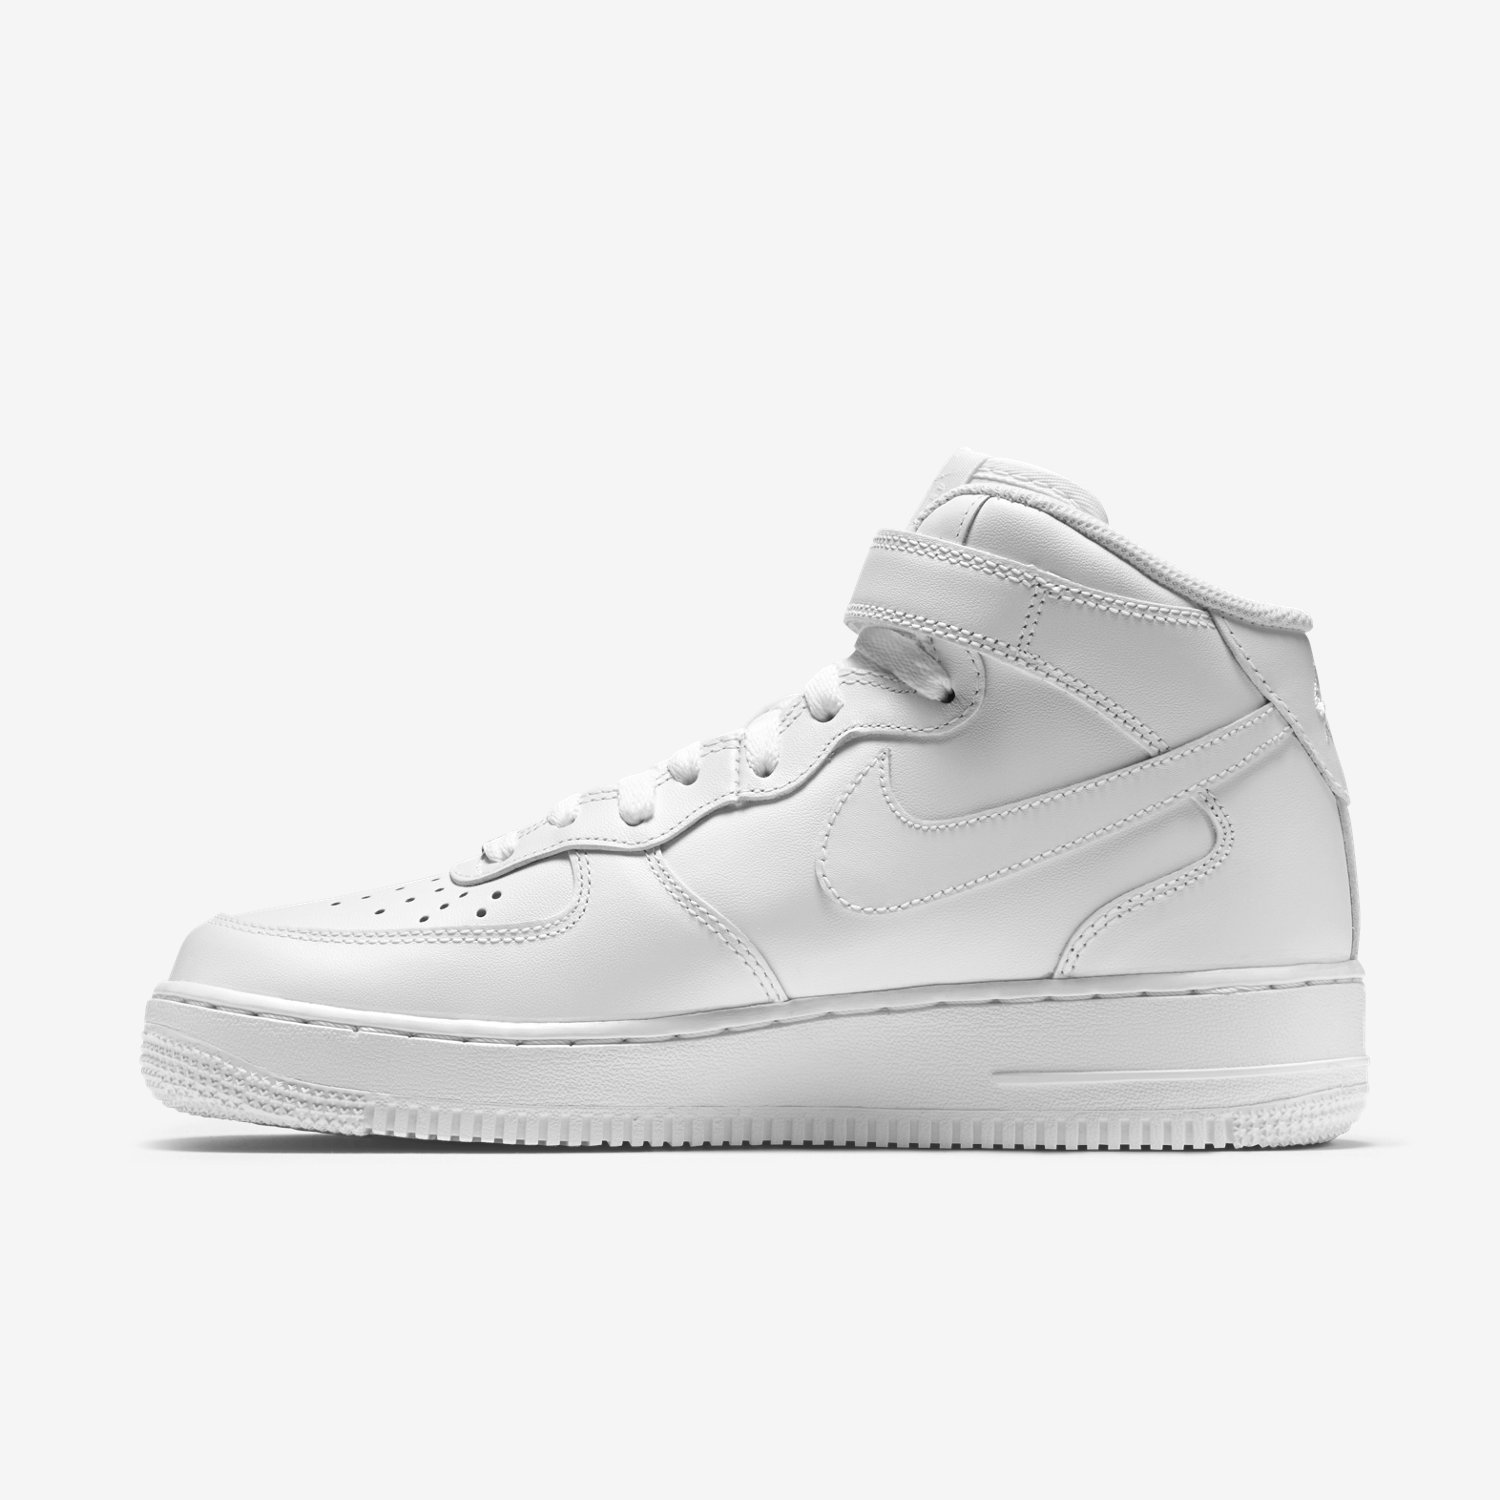 Nike AIR FORCE 1 LOW WOMENS White/White Hype DC